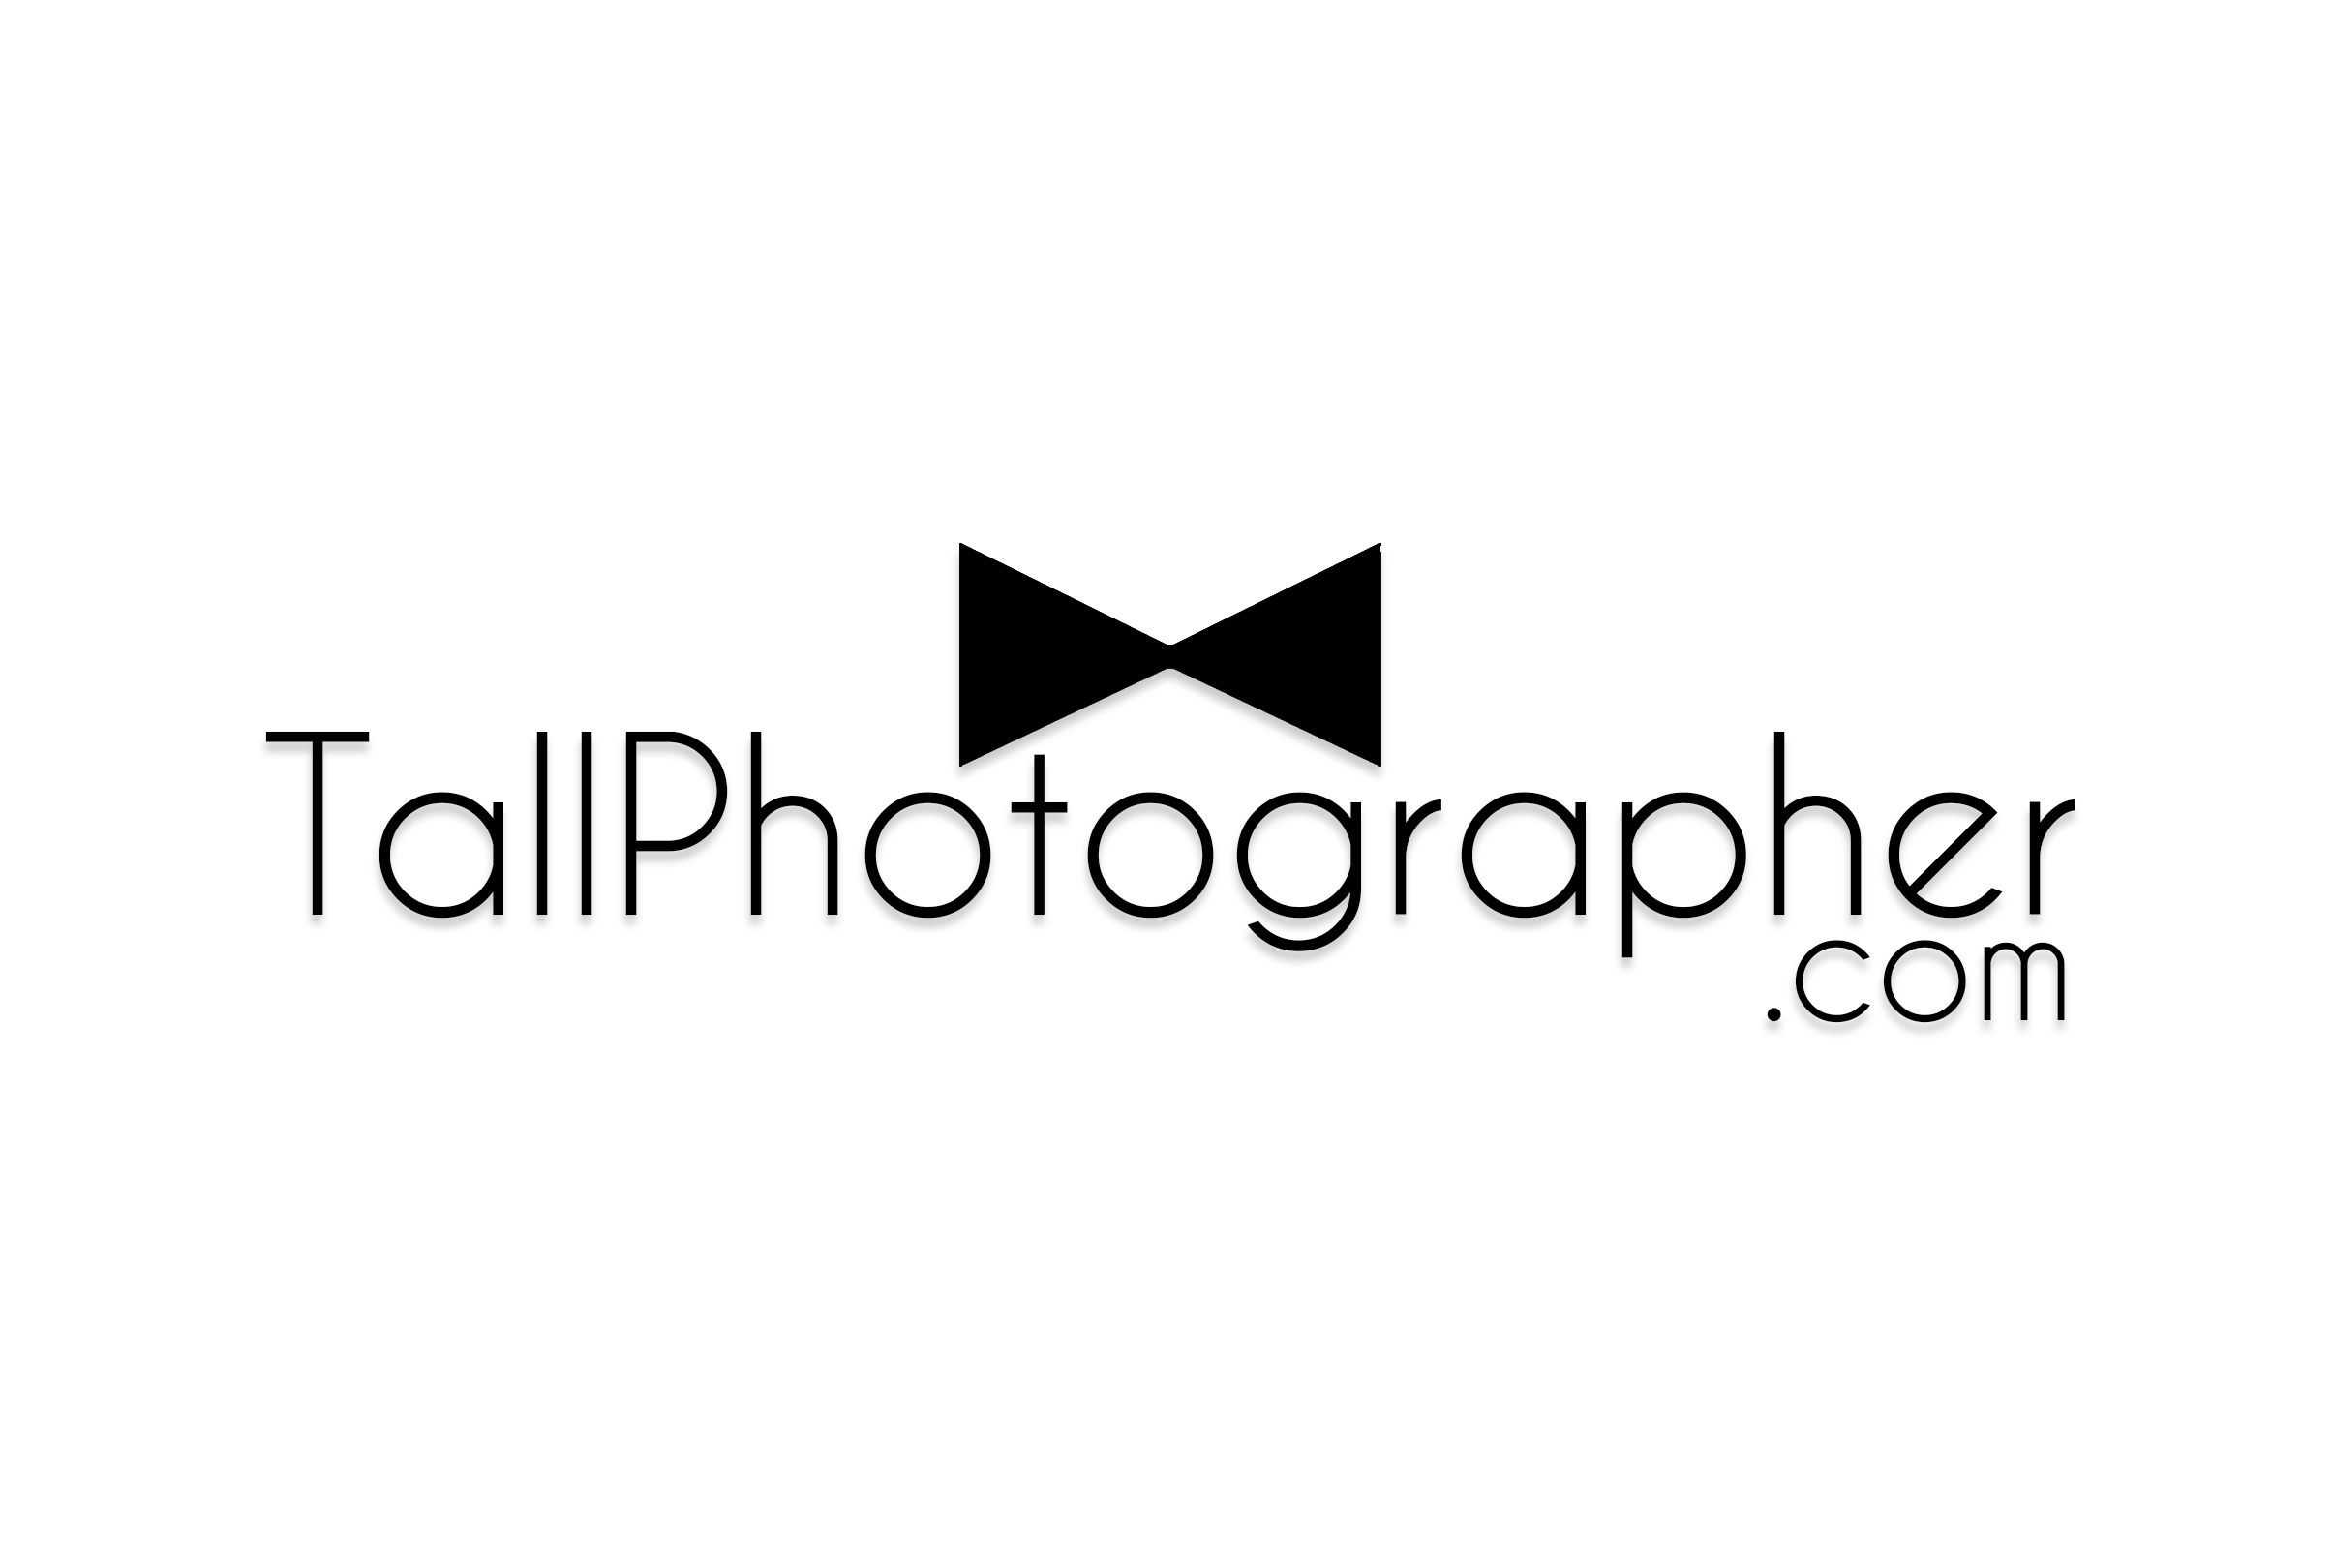 Ahmed Adel A.K.A Tall Photographer Announces Exceptional Photography and Videography Services for UAE Businesses